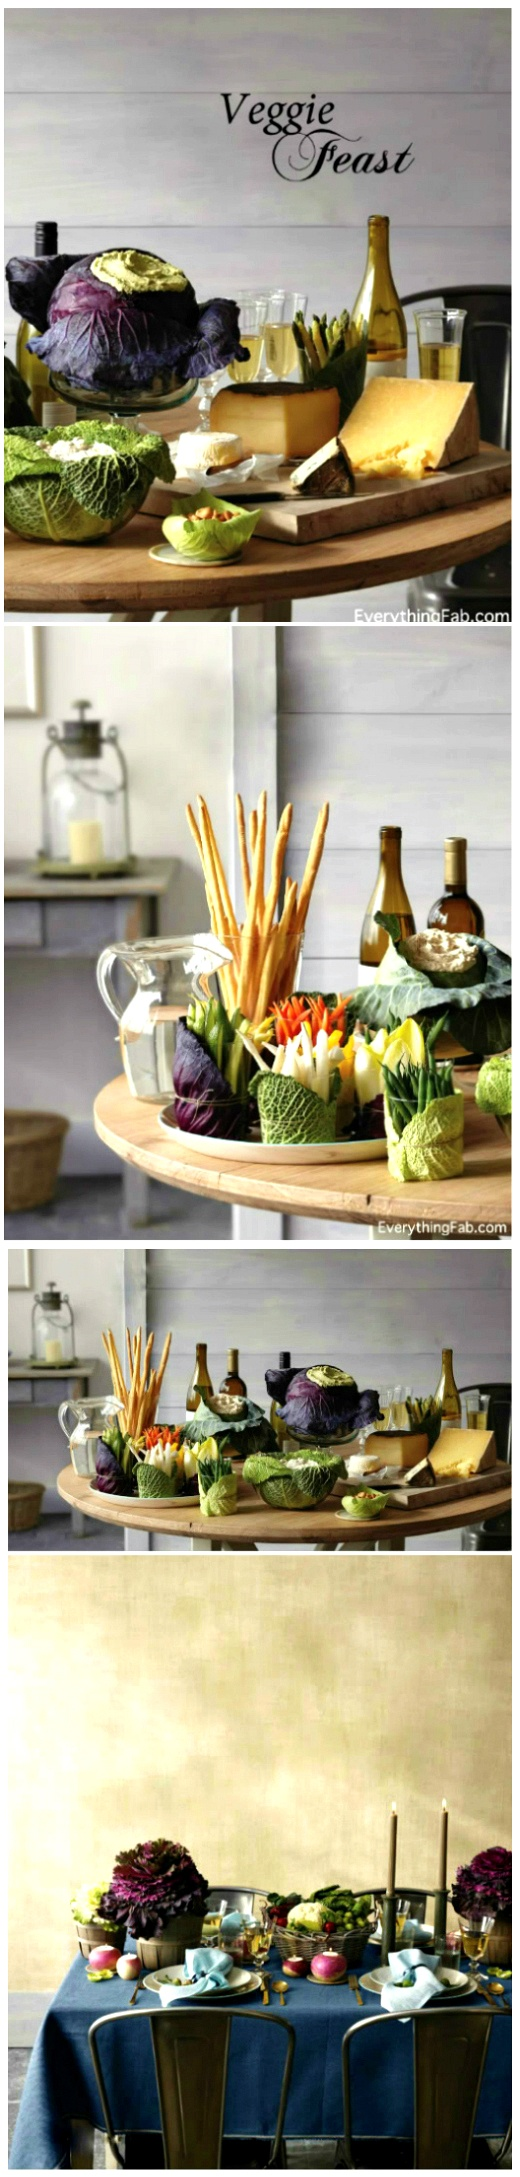 Tablescape ● Richly colored veggies to decorate your tablescape or appetizer table